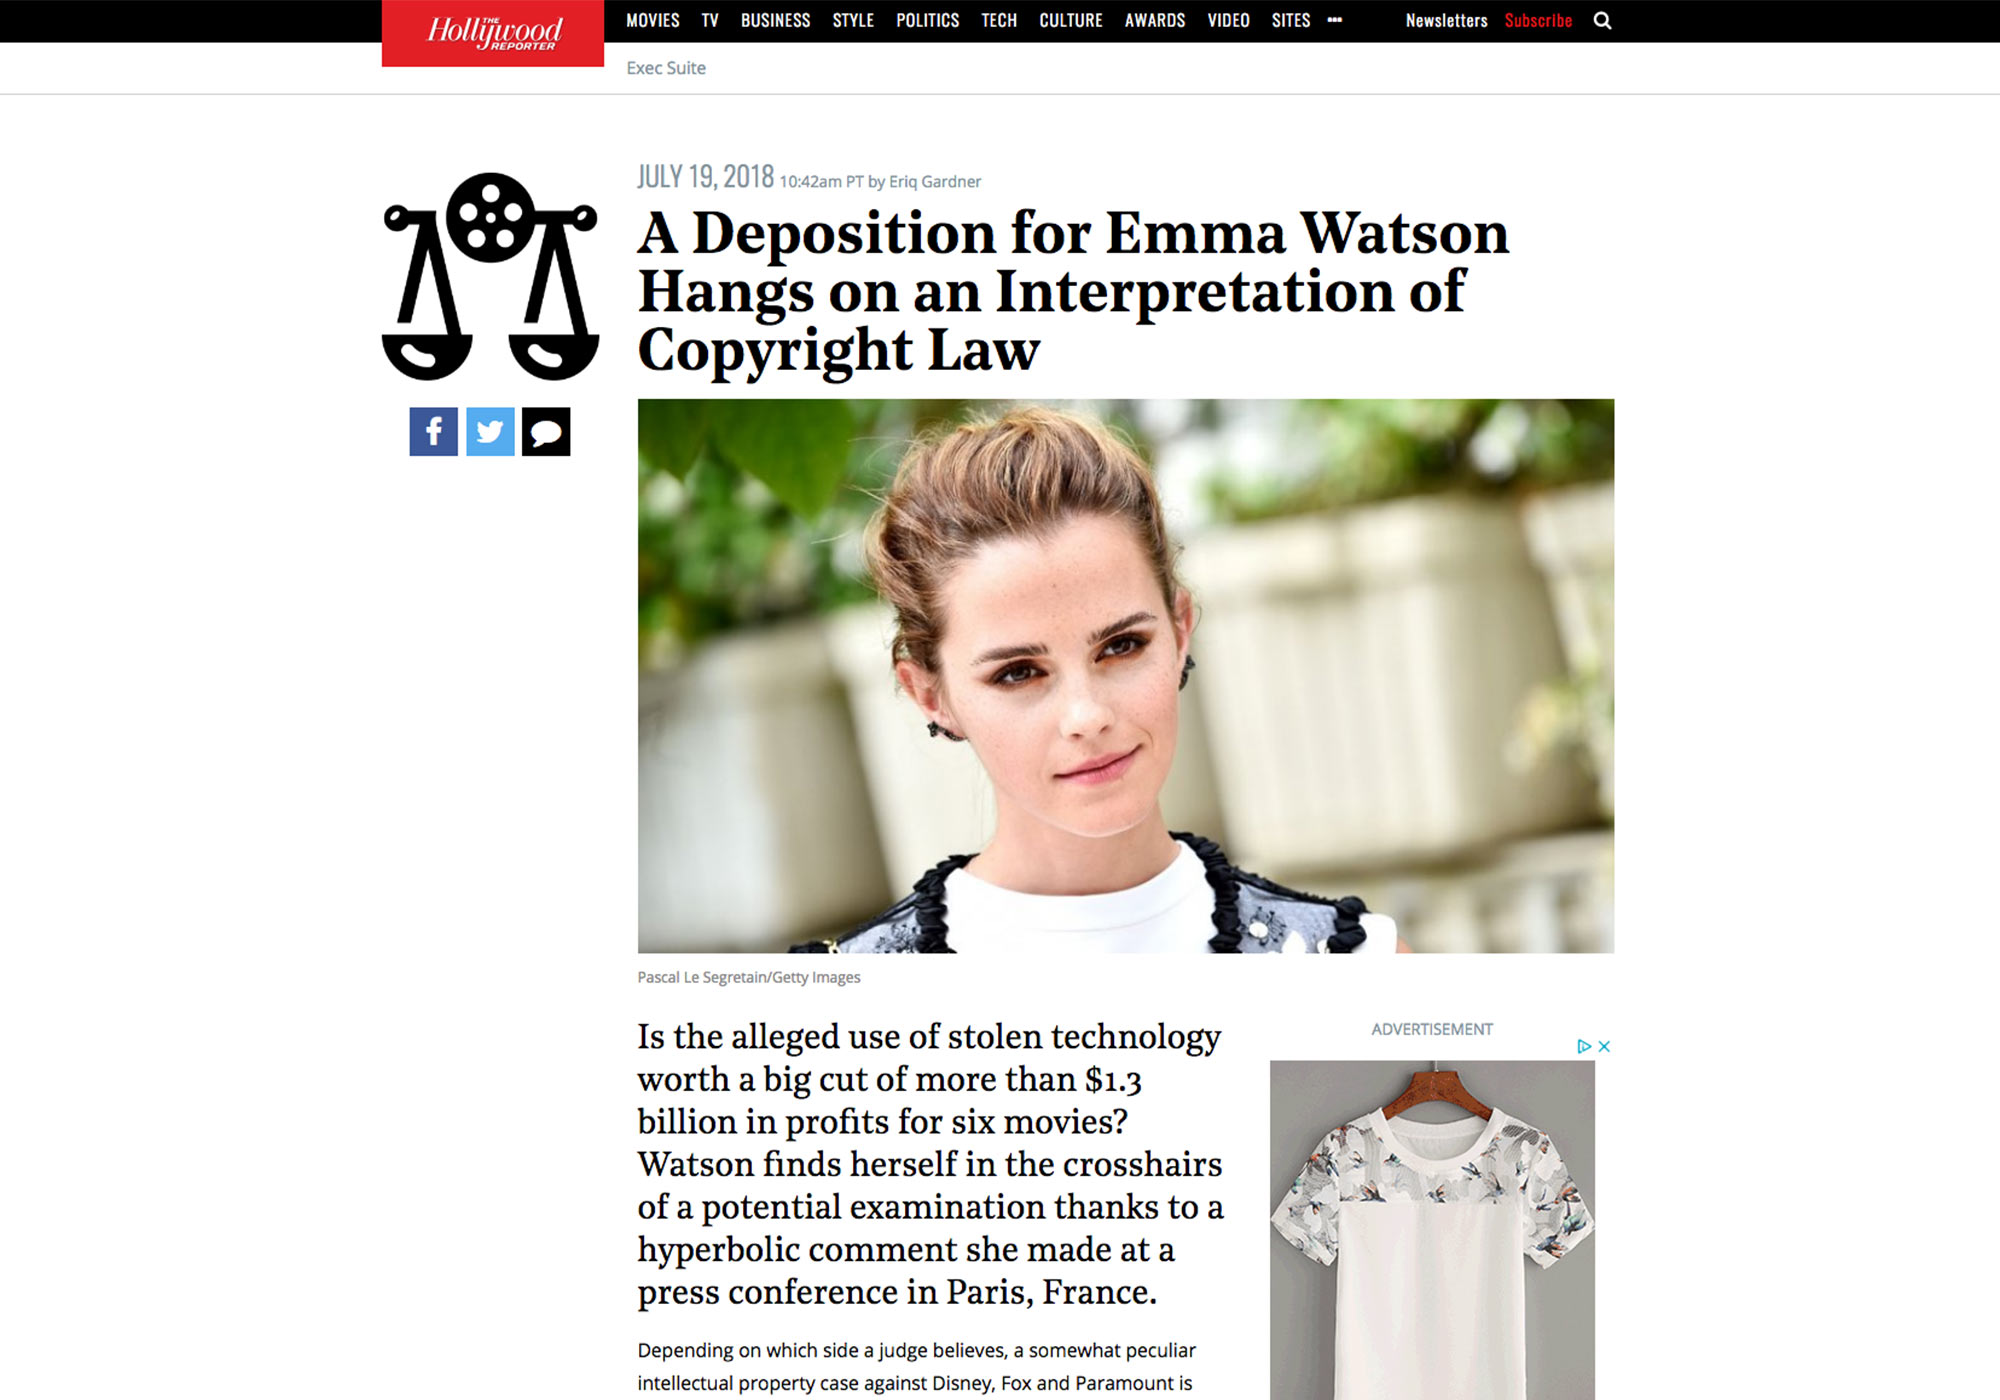 Fairness Rocks News A Deposition for Emma Watson Hangs on an Interpretation of Copyright Law